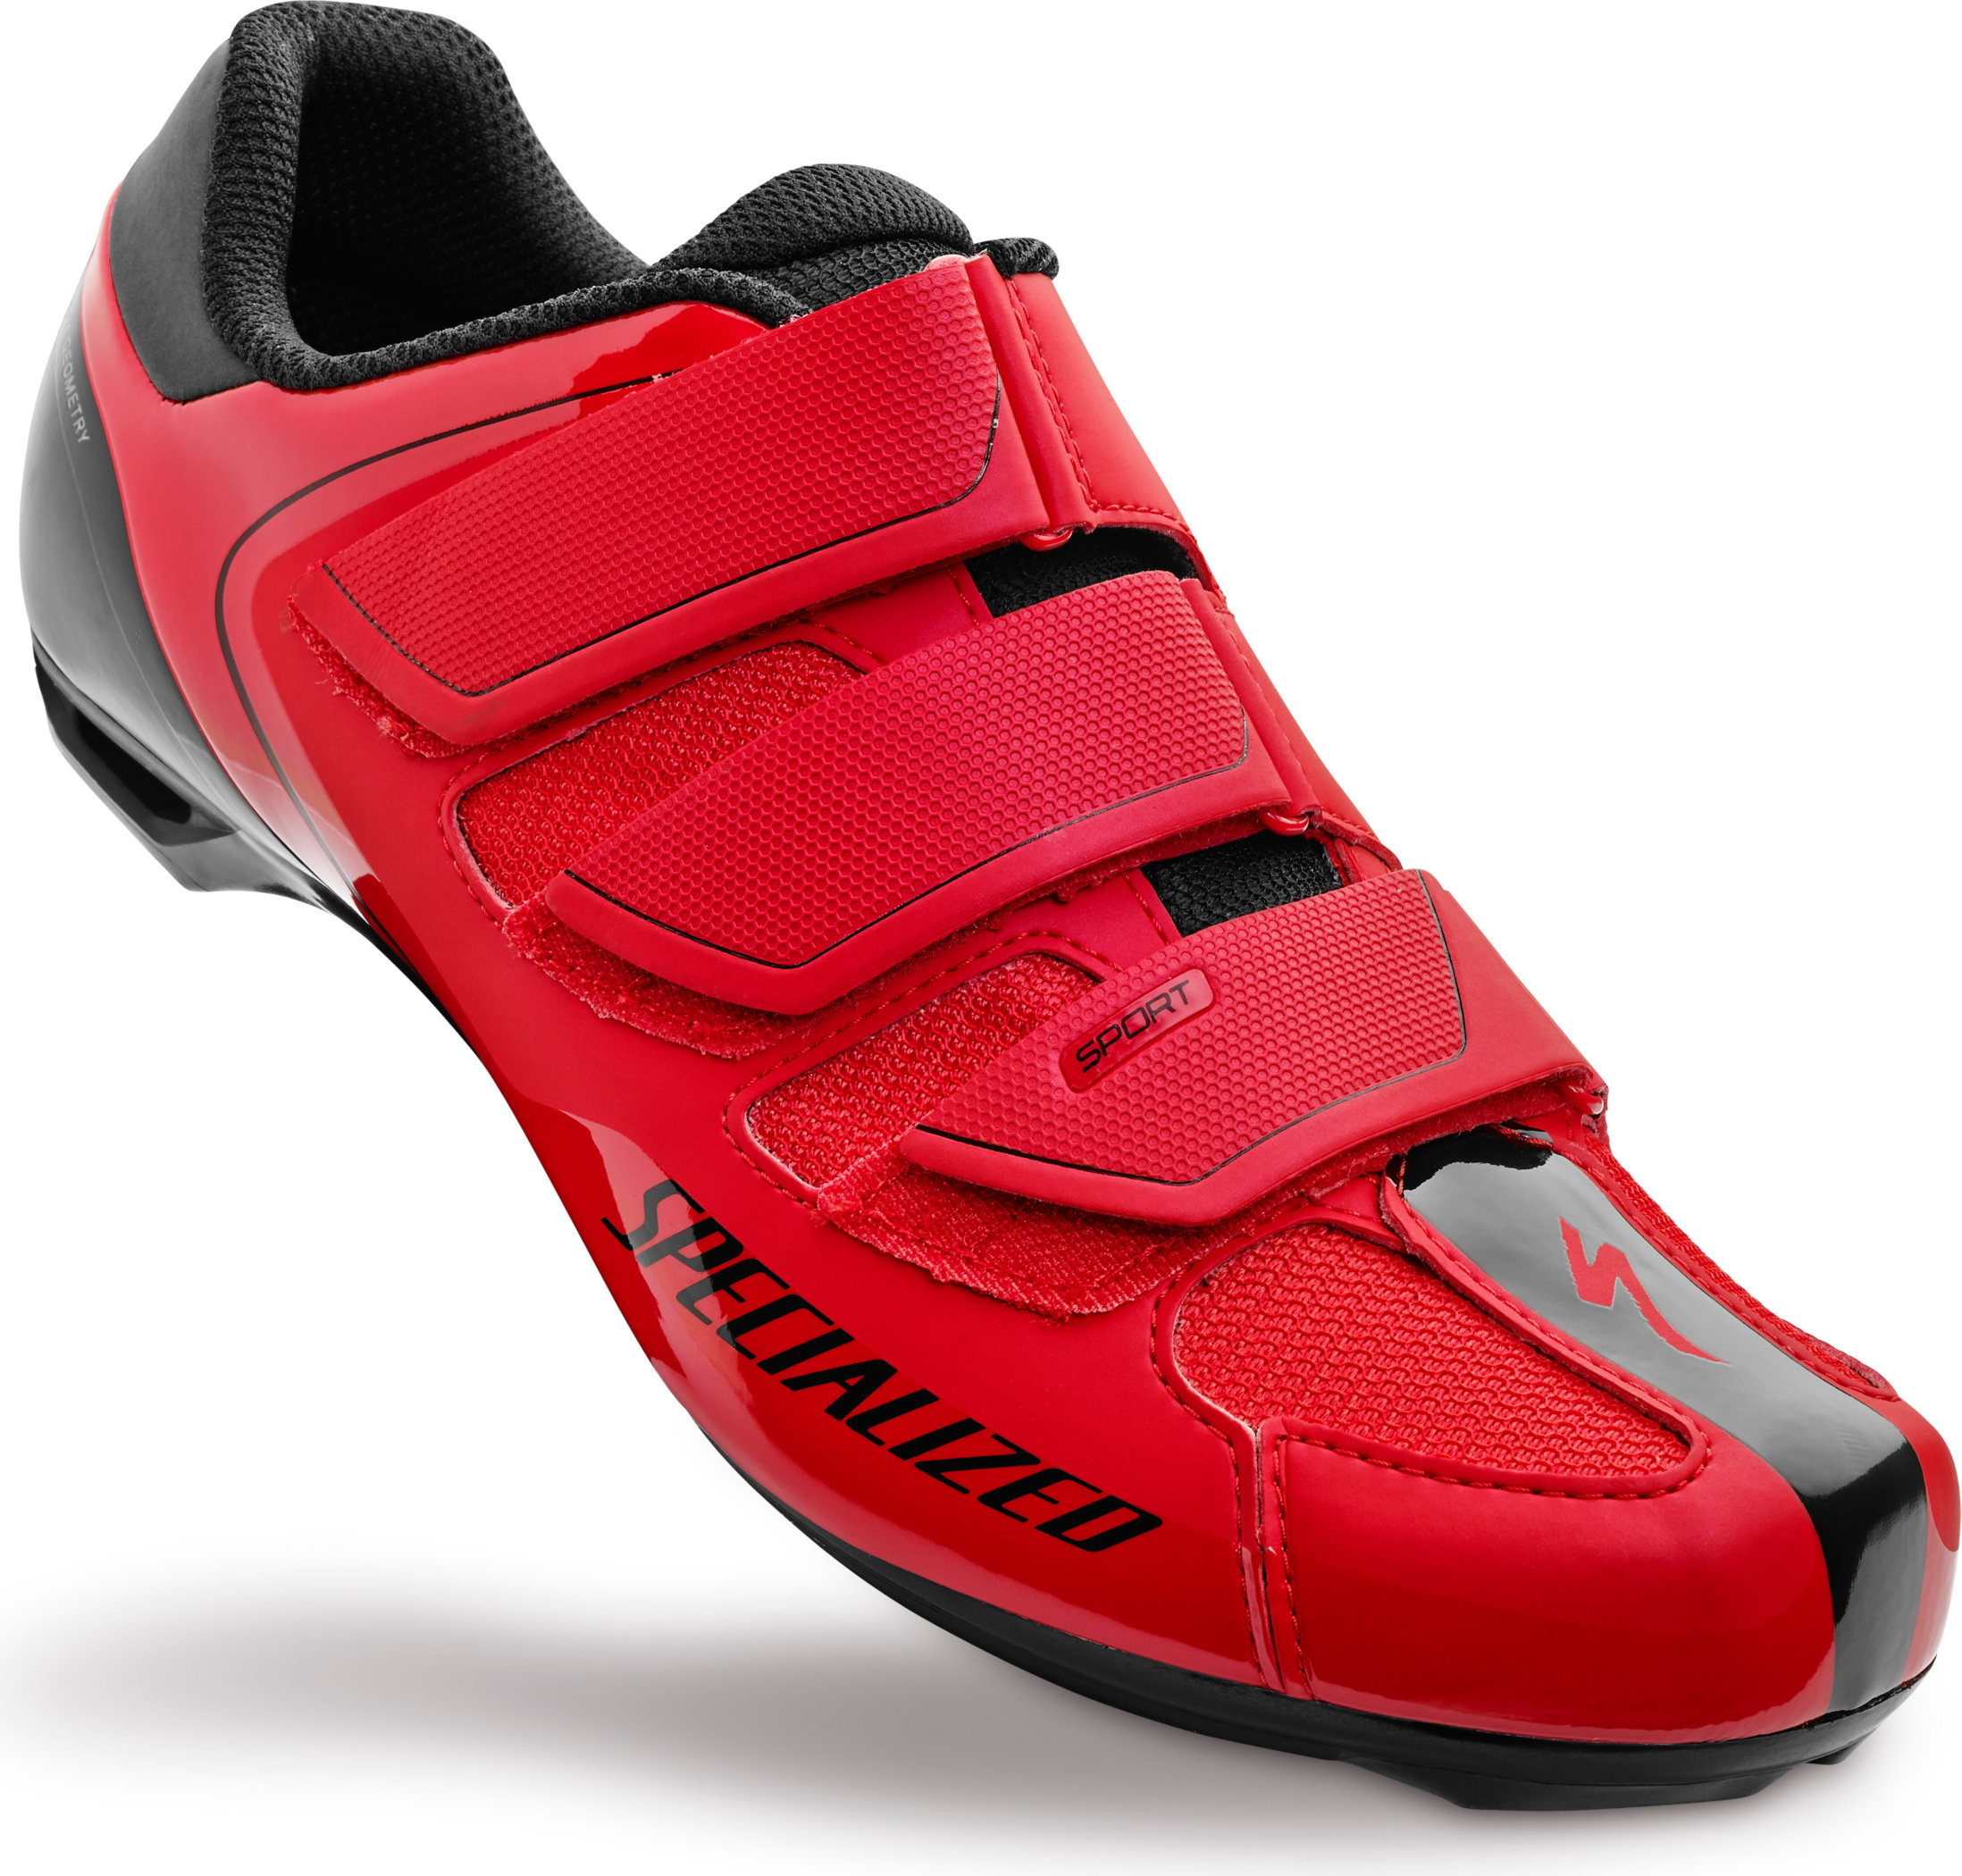 SPECIALIZED SPORT RD SHOE RED/BLK 40/7.5 - Bikedreams & Dustbikes